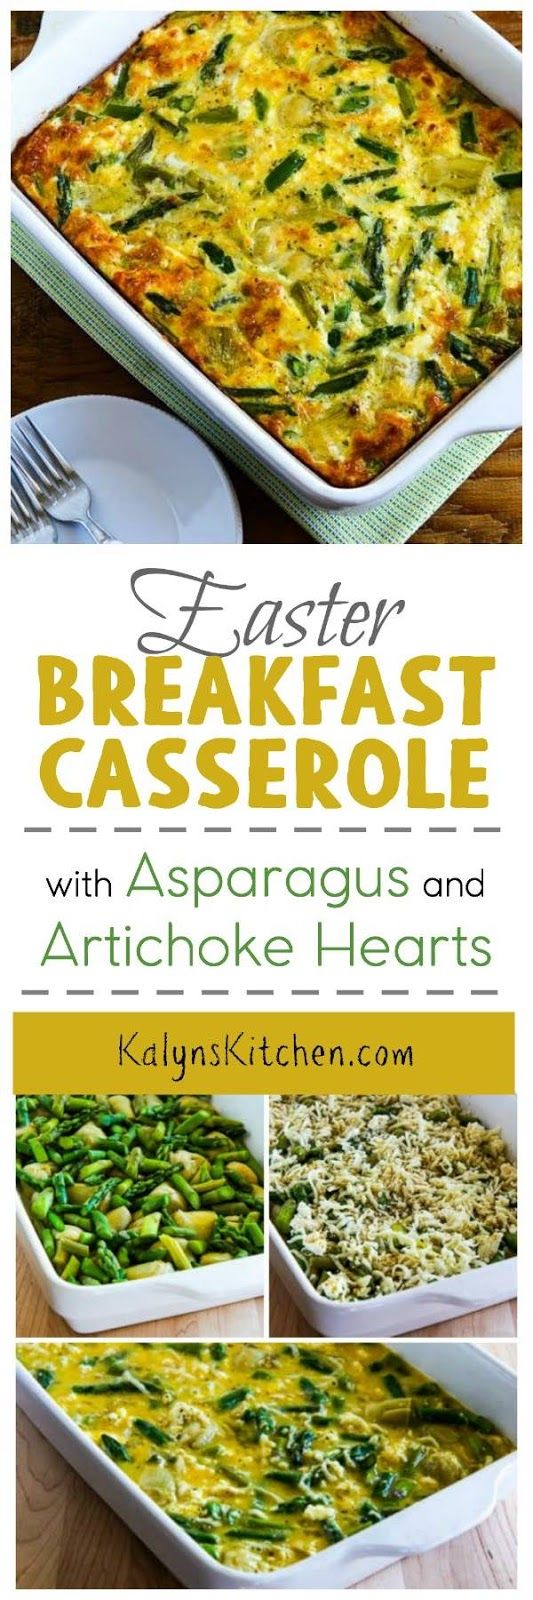 Easter Breakfast Casserole with Asparagus and Artichoke Hearts (Video)